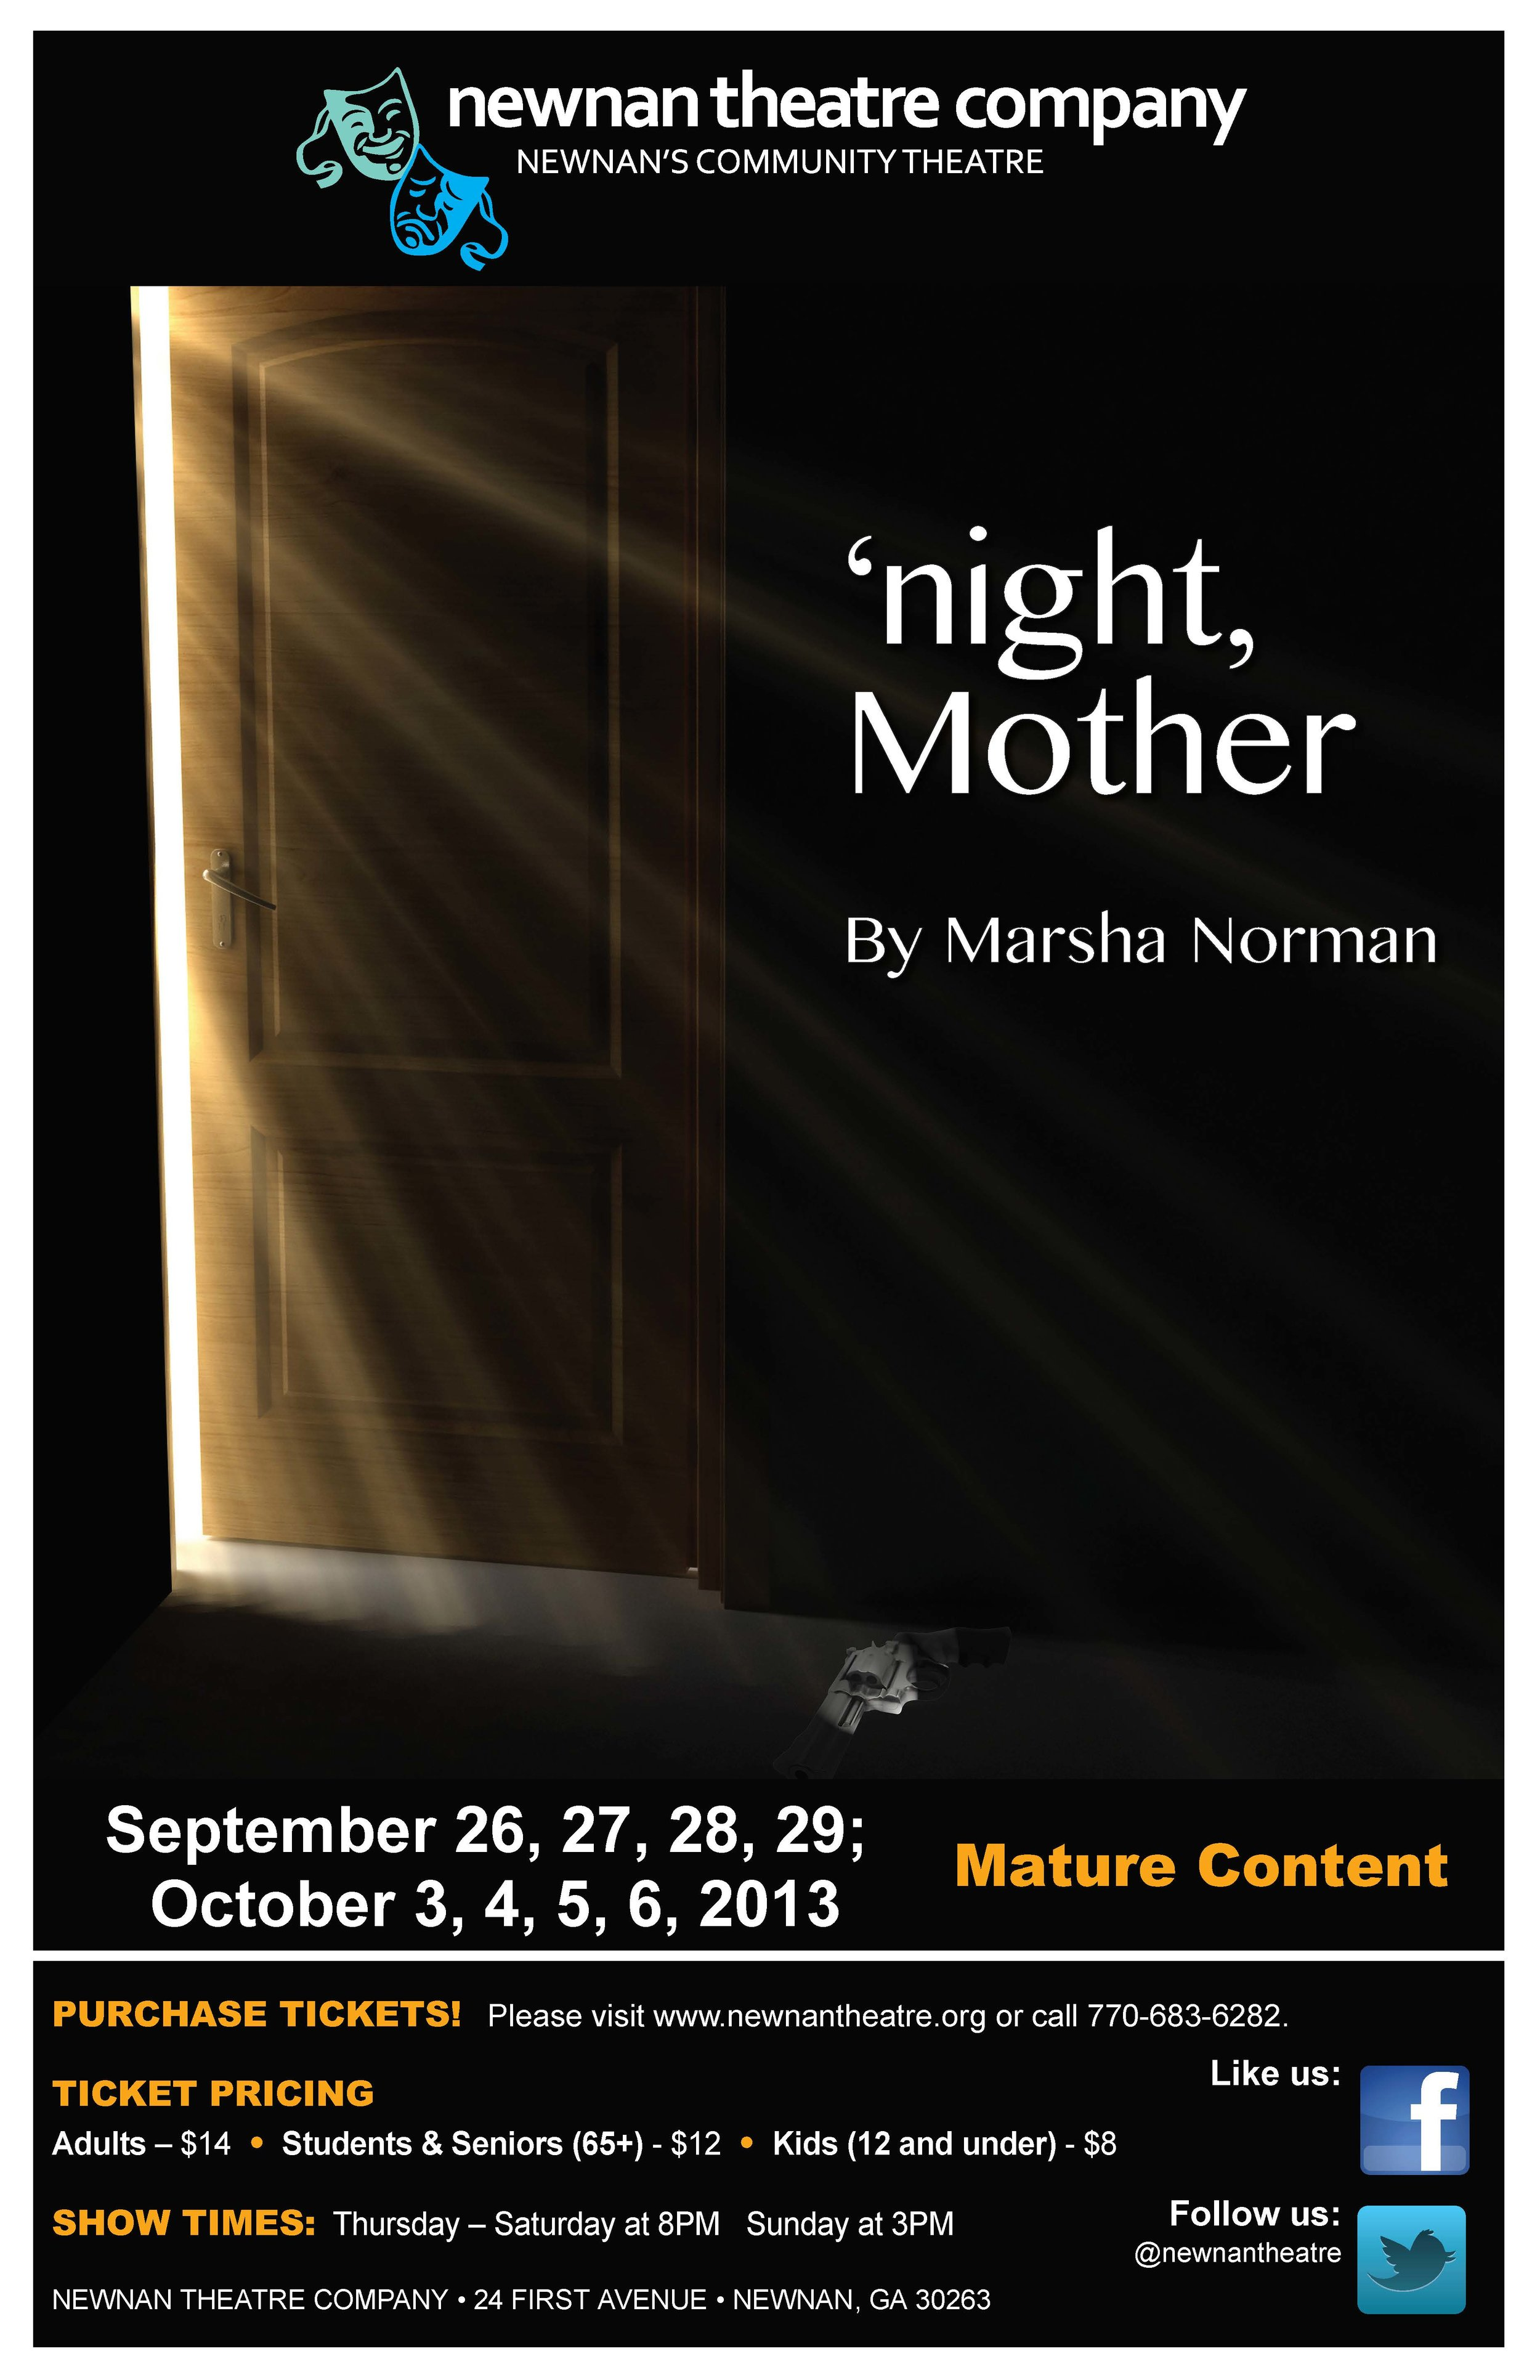 night mother poster final.jpg